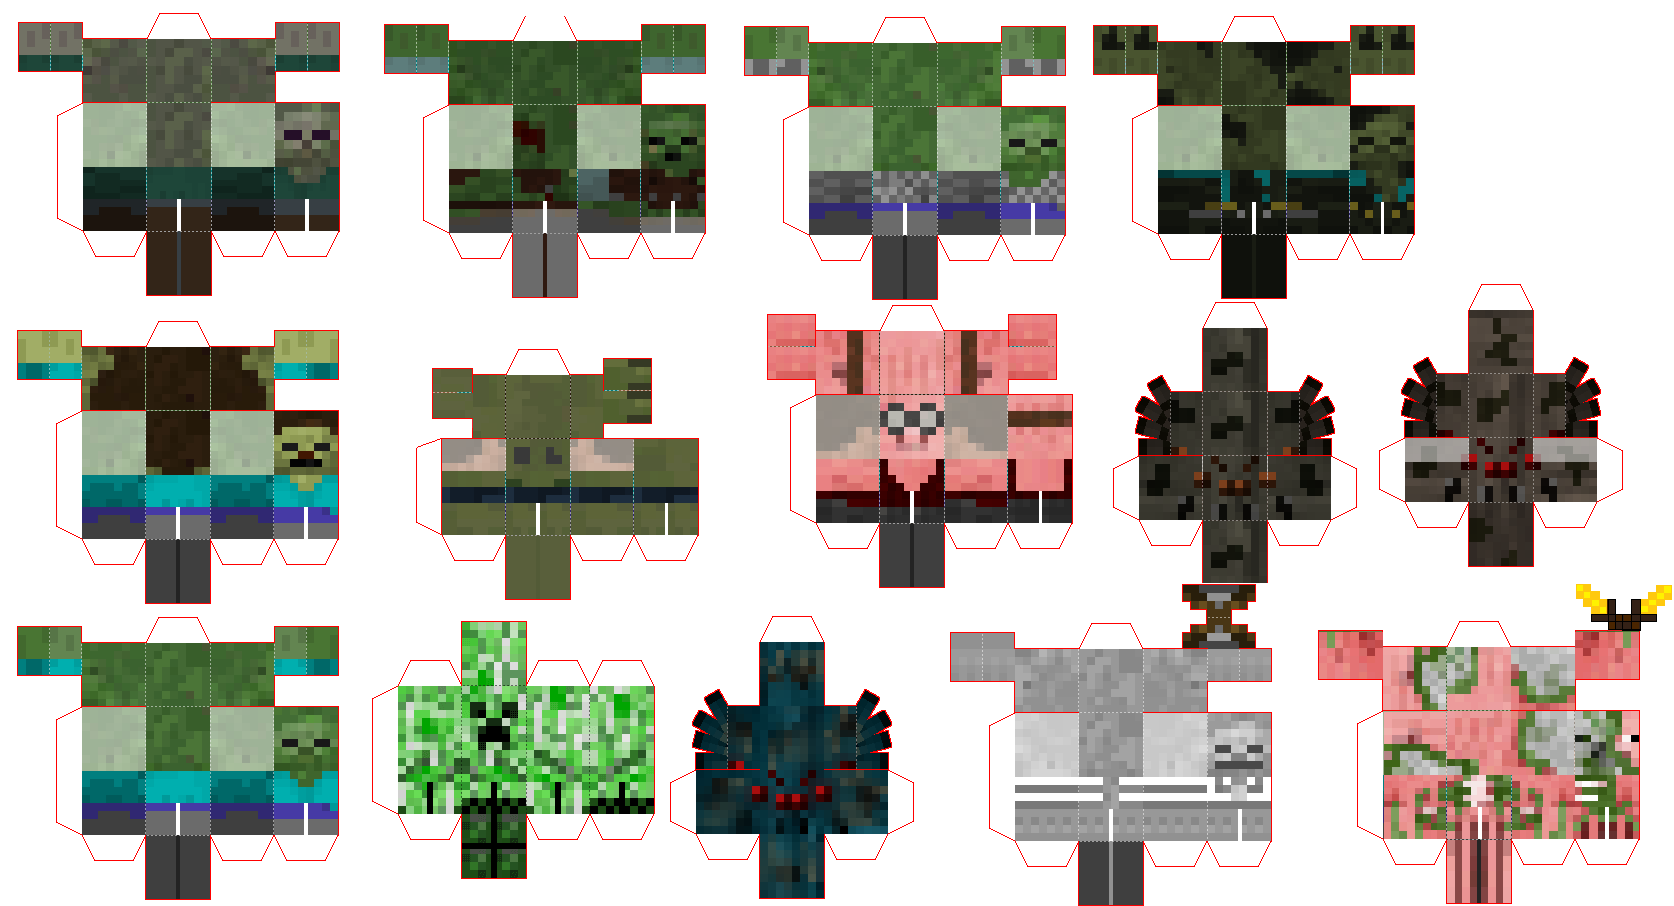 Papercraft Invasion Mod Game Paper Crafts Minecraft Printables Free Minecraft Images